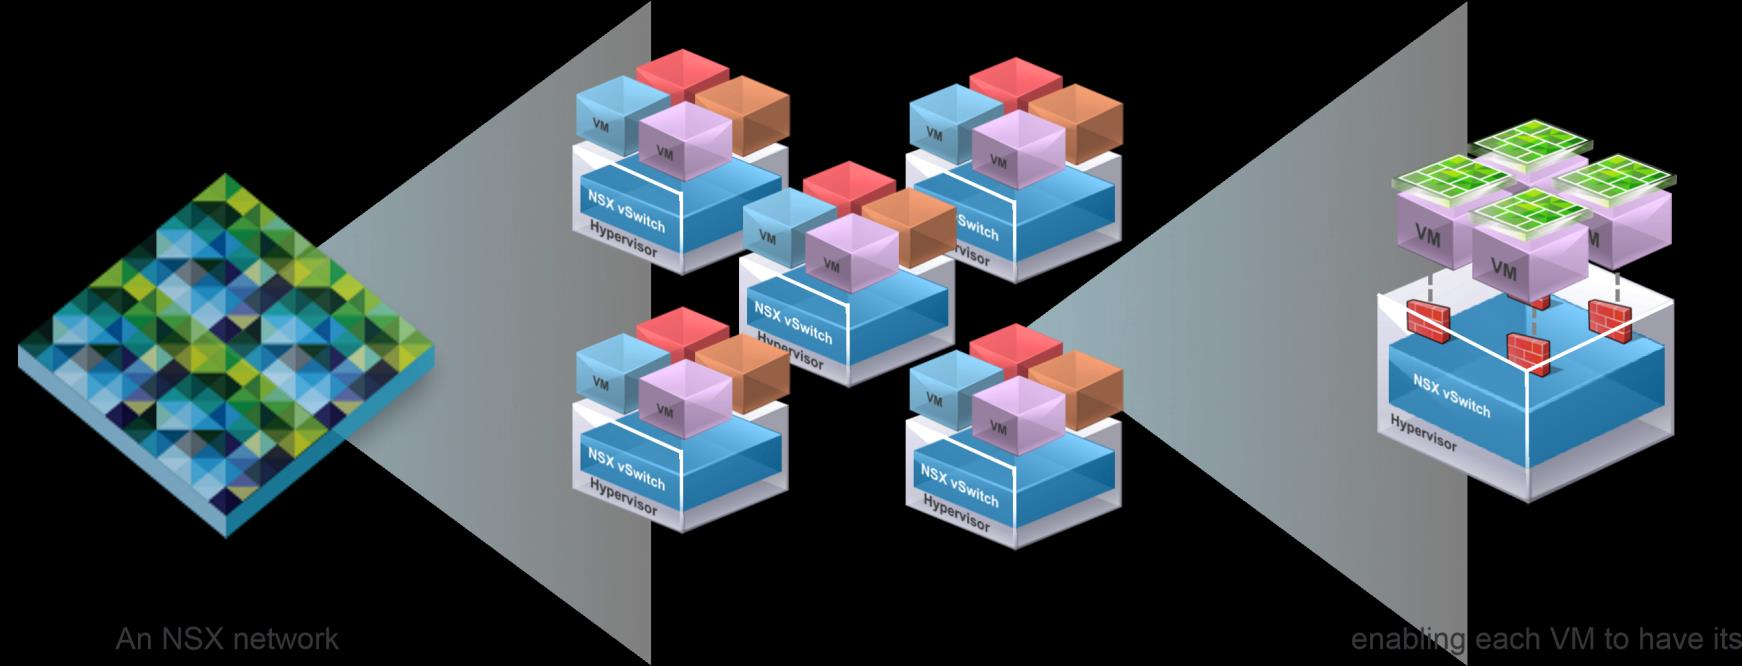 NSX firewalling: fully distributed, embedded in every hypervisor in the data